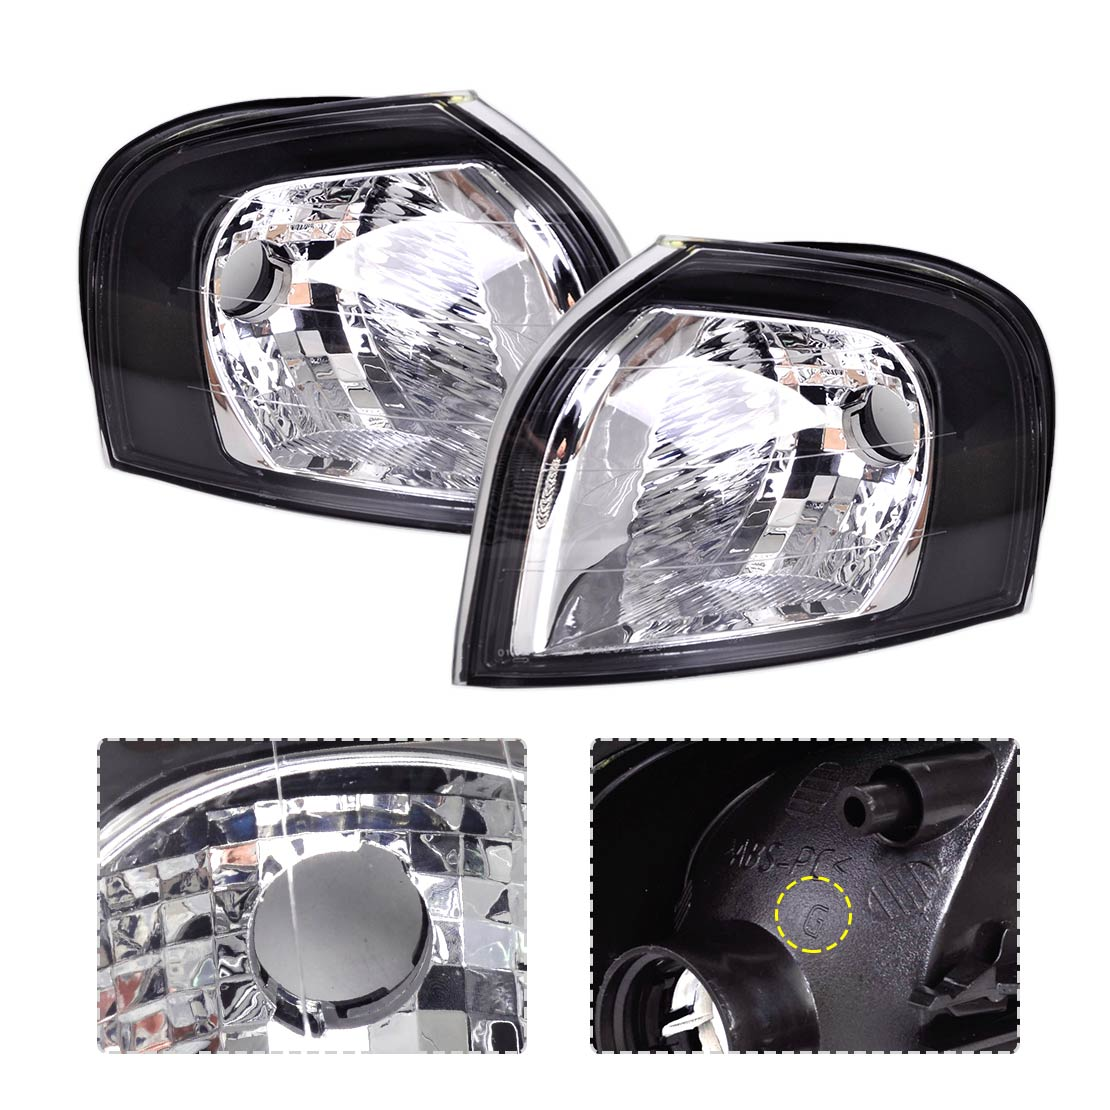 CITALL 2pcs Turn Signal Corner Light Lamp 30655422 30655423 for Volvo S80 1999 2000 2001 2002 2003 2004 2005 2006 LHD Only jeazea glove box light storage compartment lamp 1j0947301 1j0 947 301 for vw jetta golf bora octavia 2000 2001 2002 2003 2004